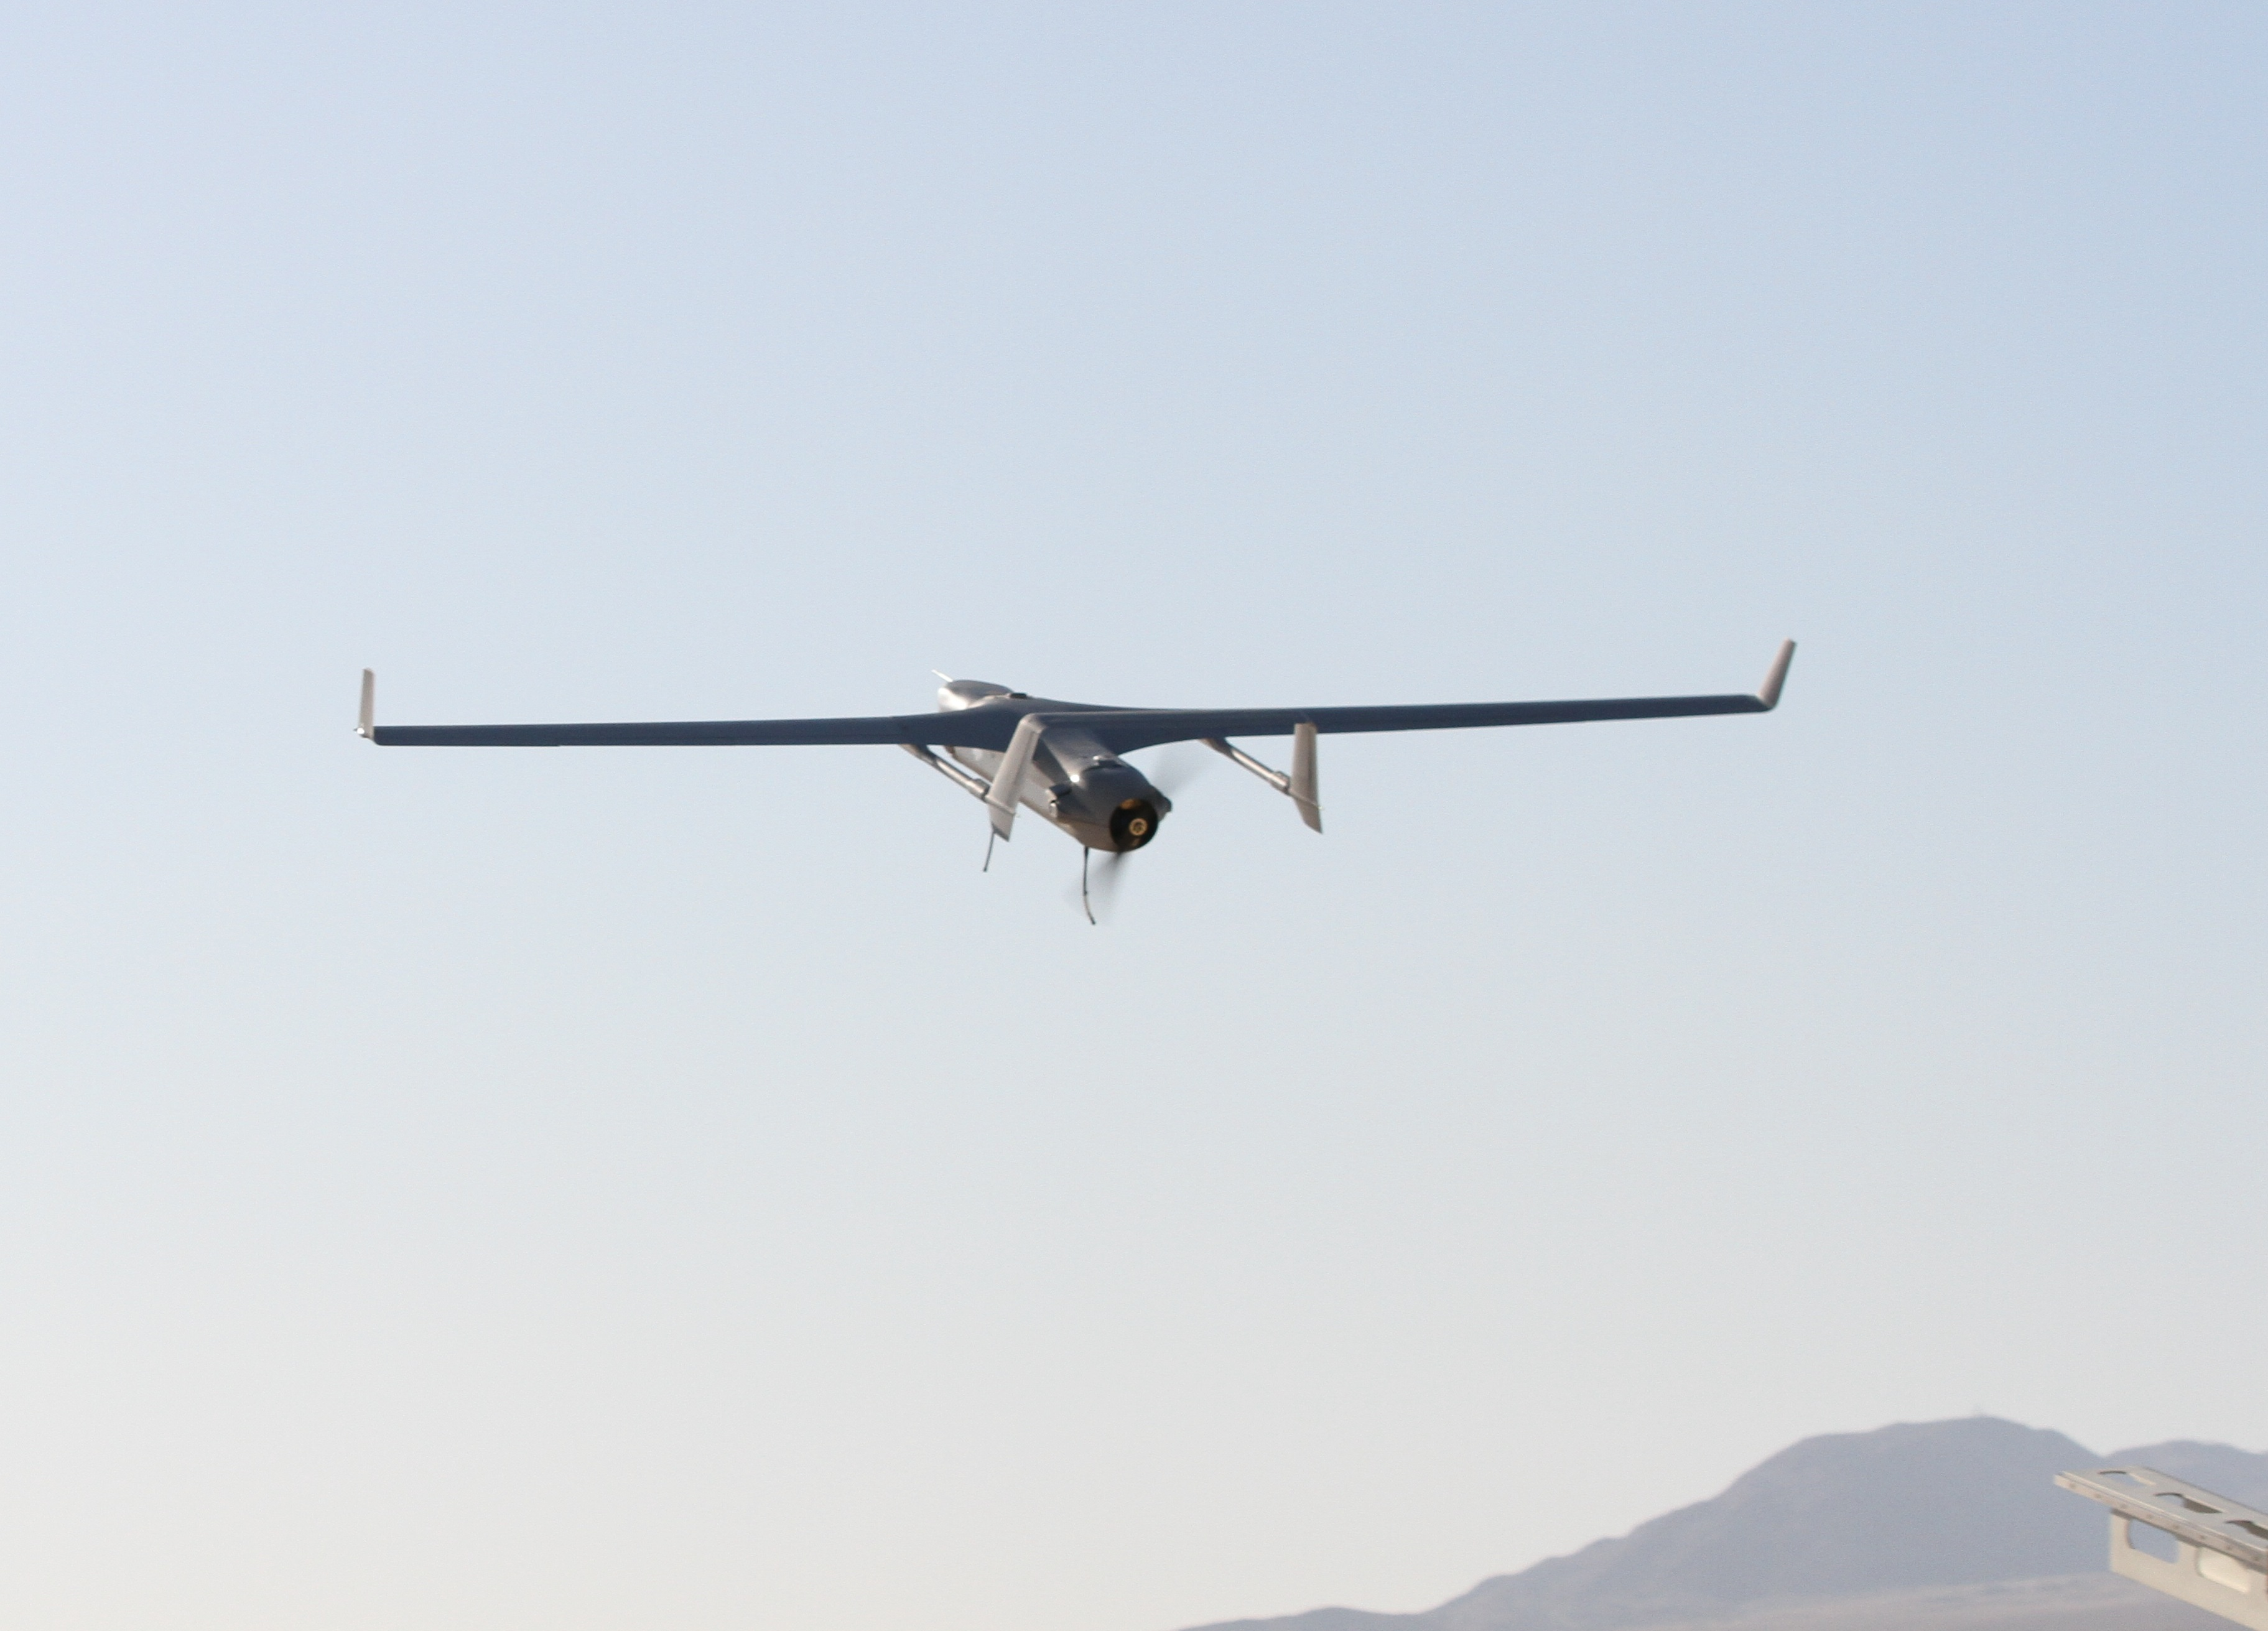 AUVSI 2012: Insitu continues with Integrator and Scan Eagle successes